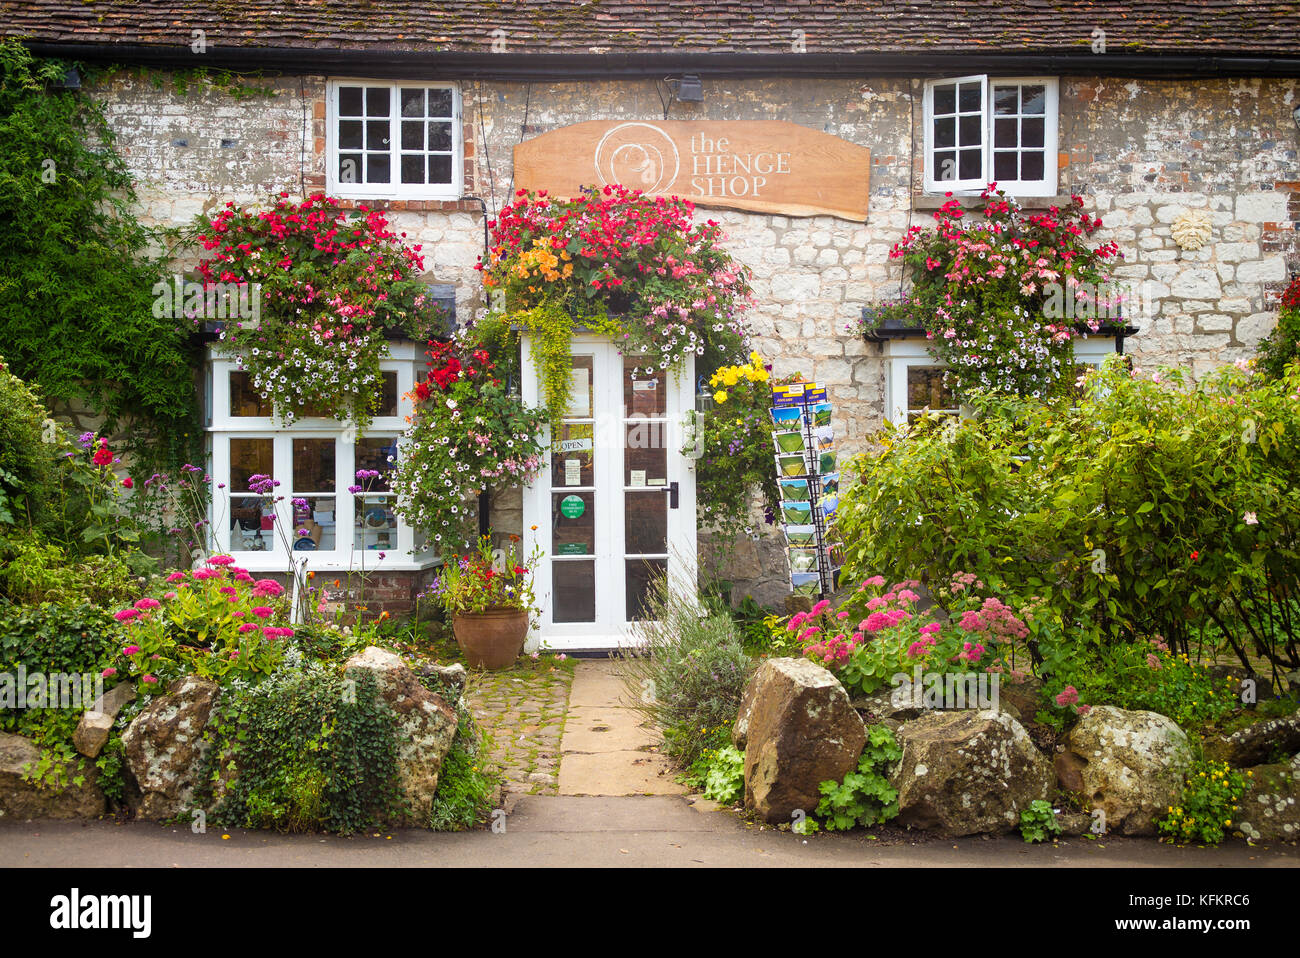 The Henge Shop in Avebury Wiltshire England with a typical English country cottage garden - Stock Image